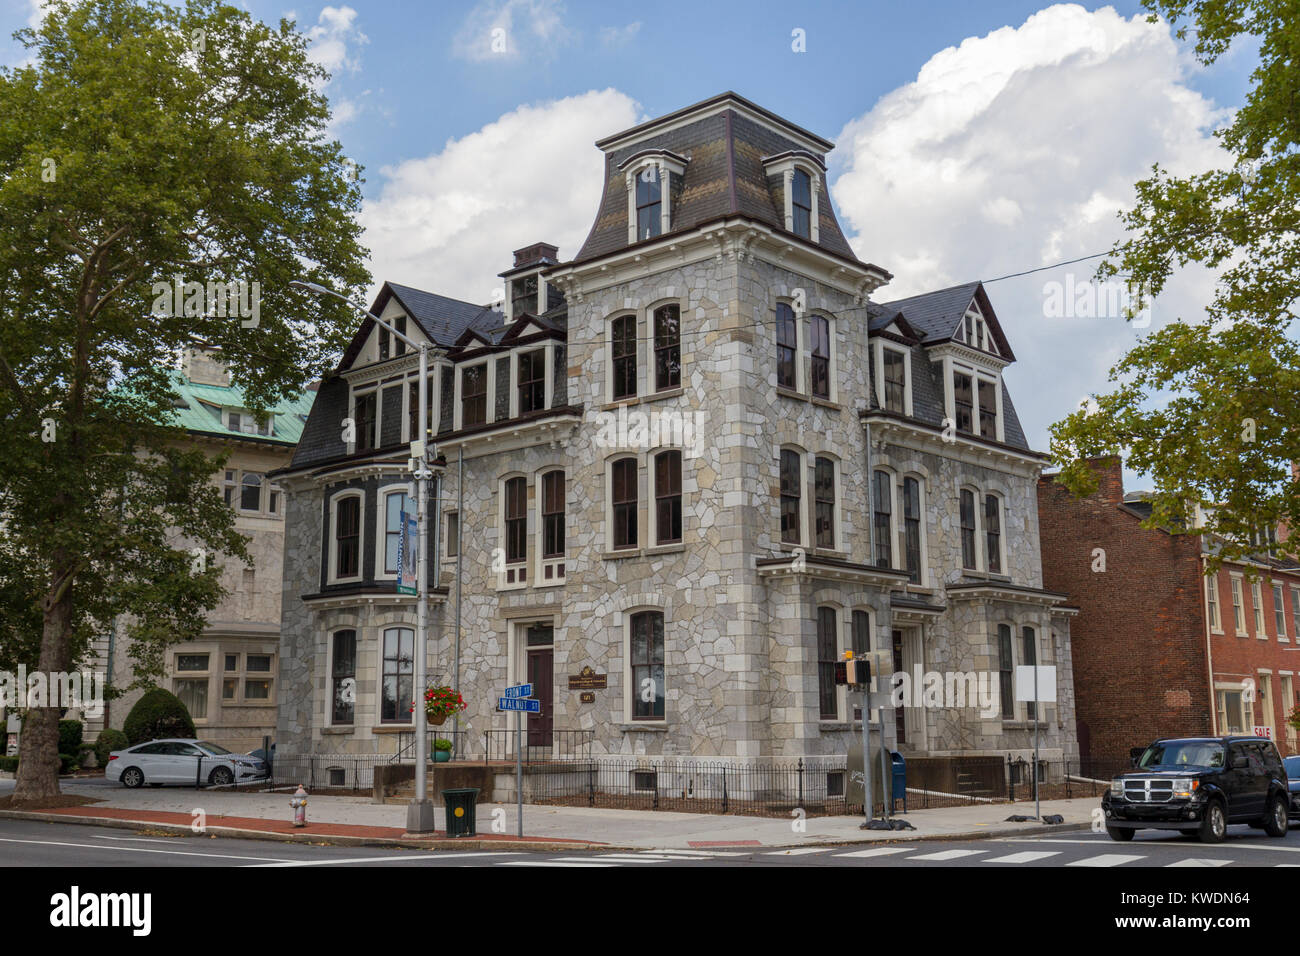 The Association of Independent Colleges and Universities of Pennsylvania, N 101 Front St, Harrisburg, Pennsylvania, - Stock Image